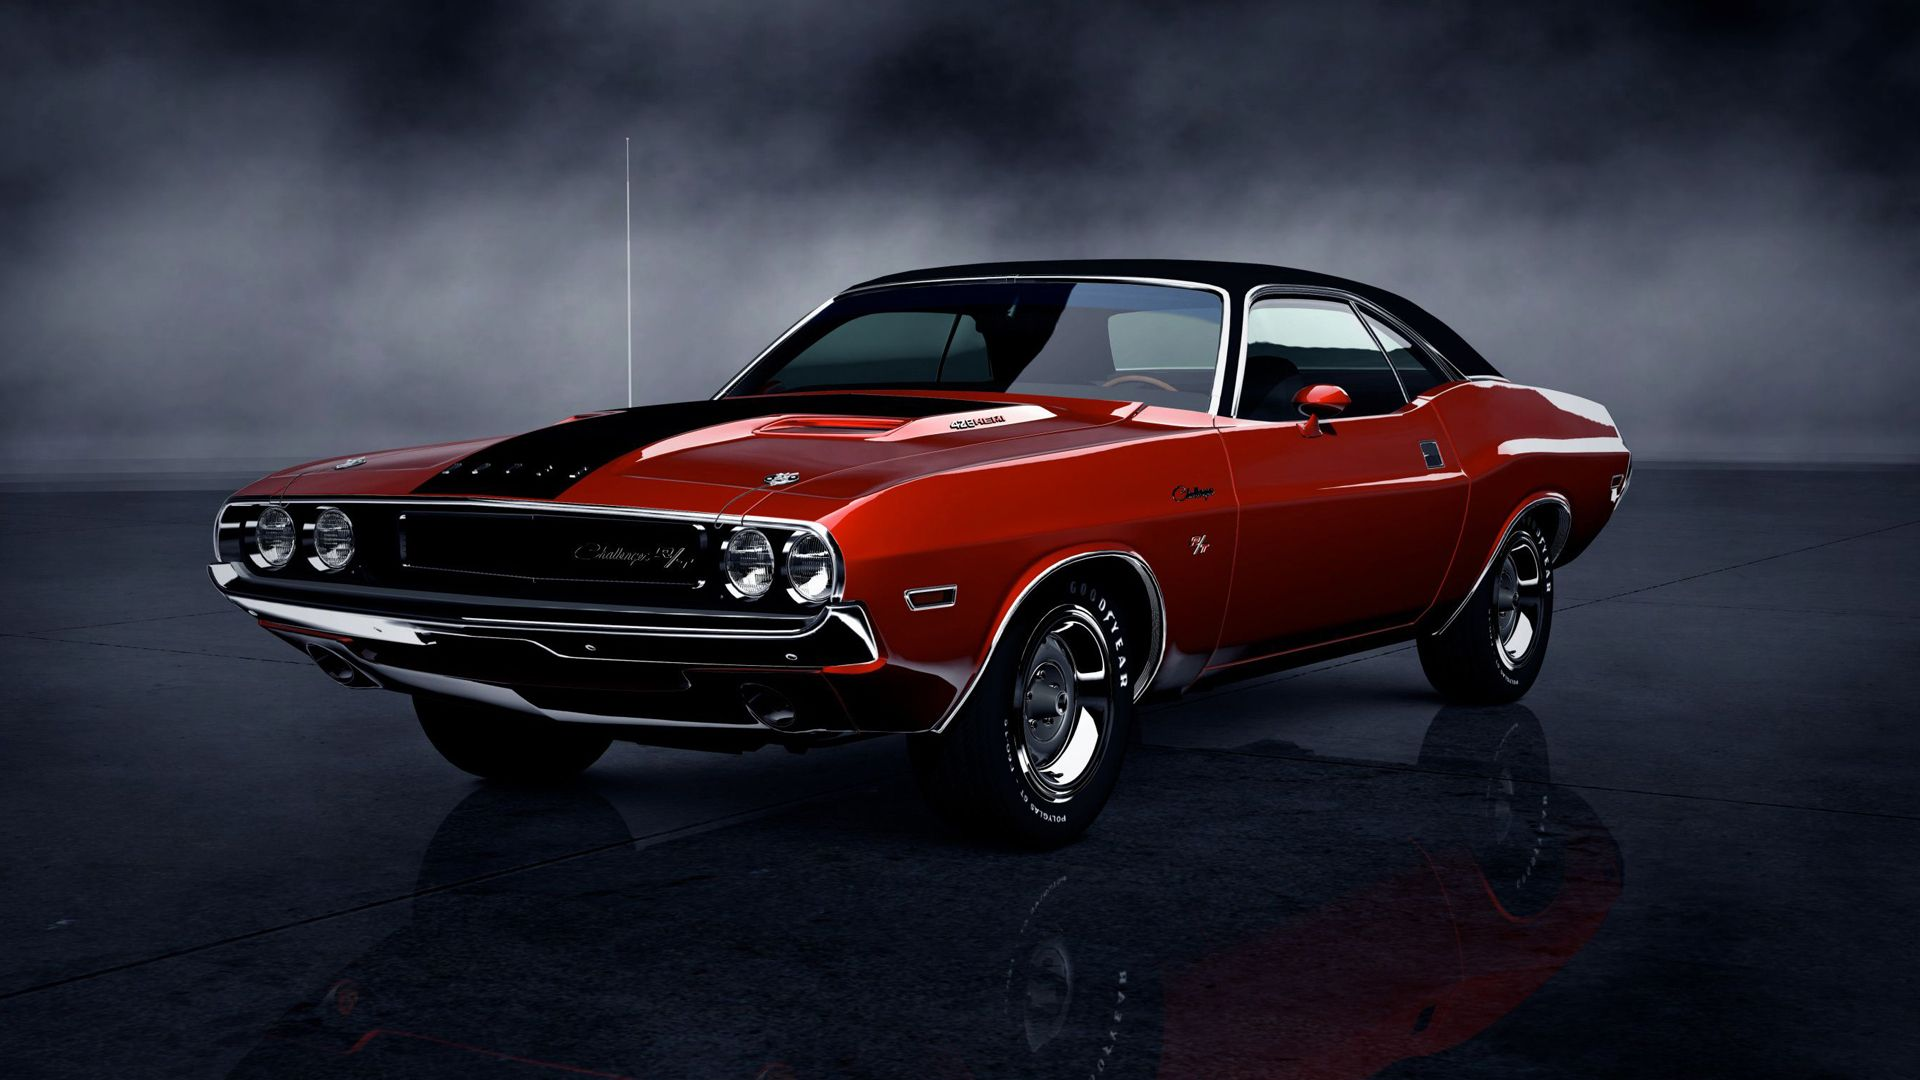 Charger Daytona For Sale >> 69 Dodge Charger Wallpaper - WallpaperSafari